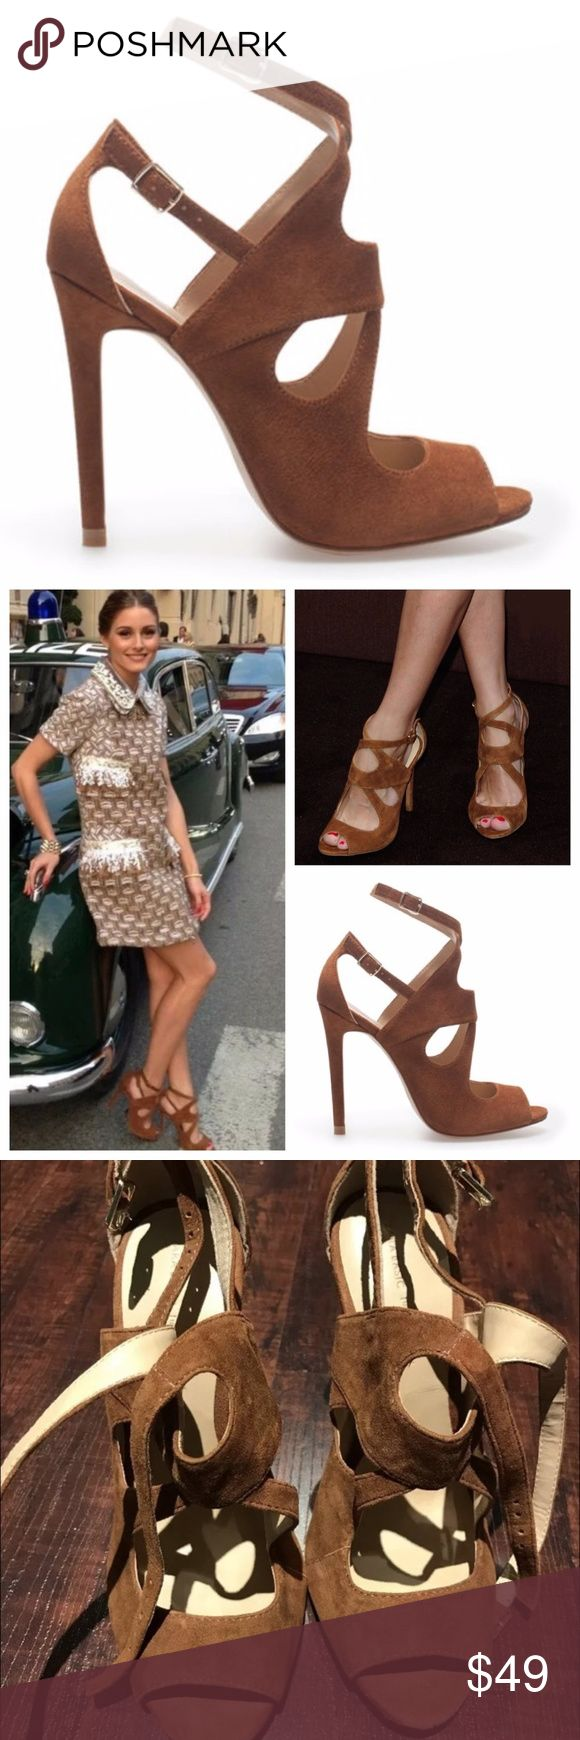 ZARA Brown Strappy Heels Sz 36 Olivia Palermo RARE ZARA, Suede Whiskey Brown Strappy Sandal Heels Sz 36  As seen on Olivia Palermo -- Very rare. Only worn once! Zara Shoes Heels